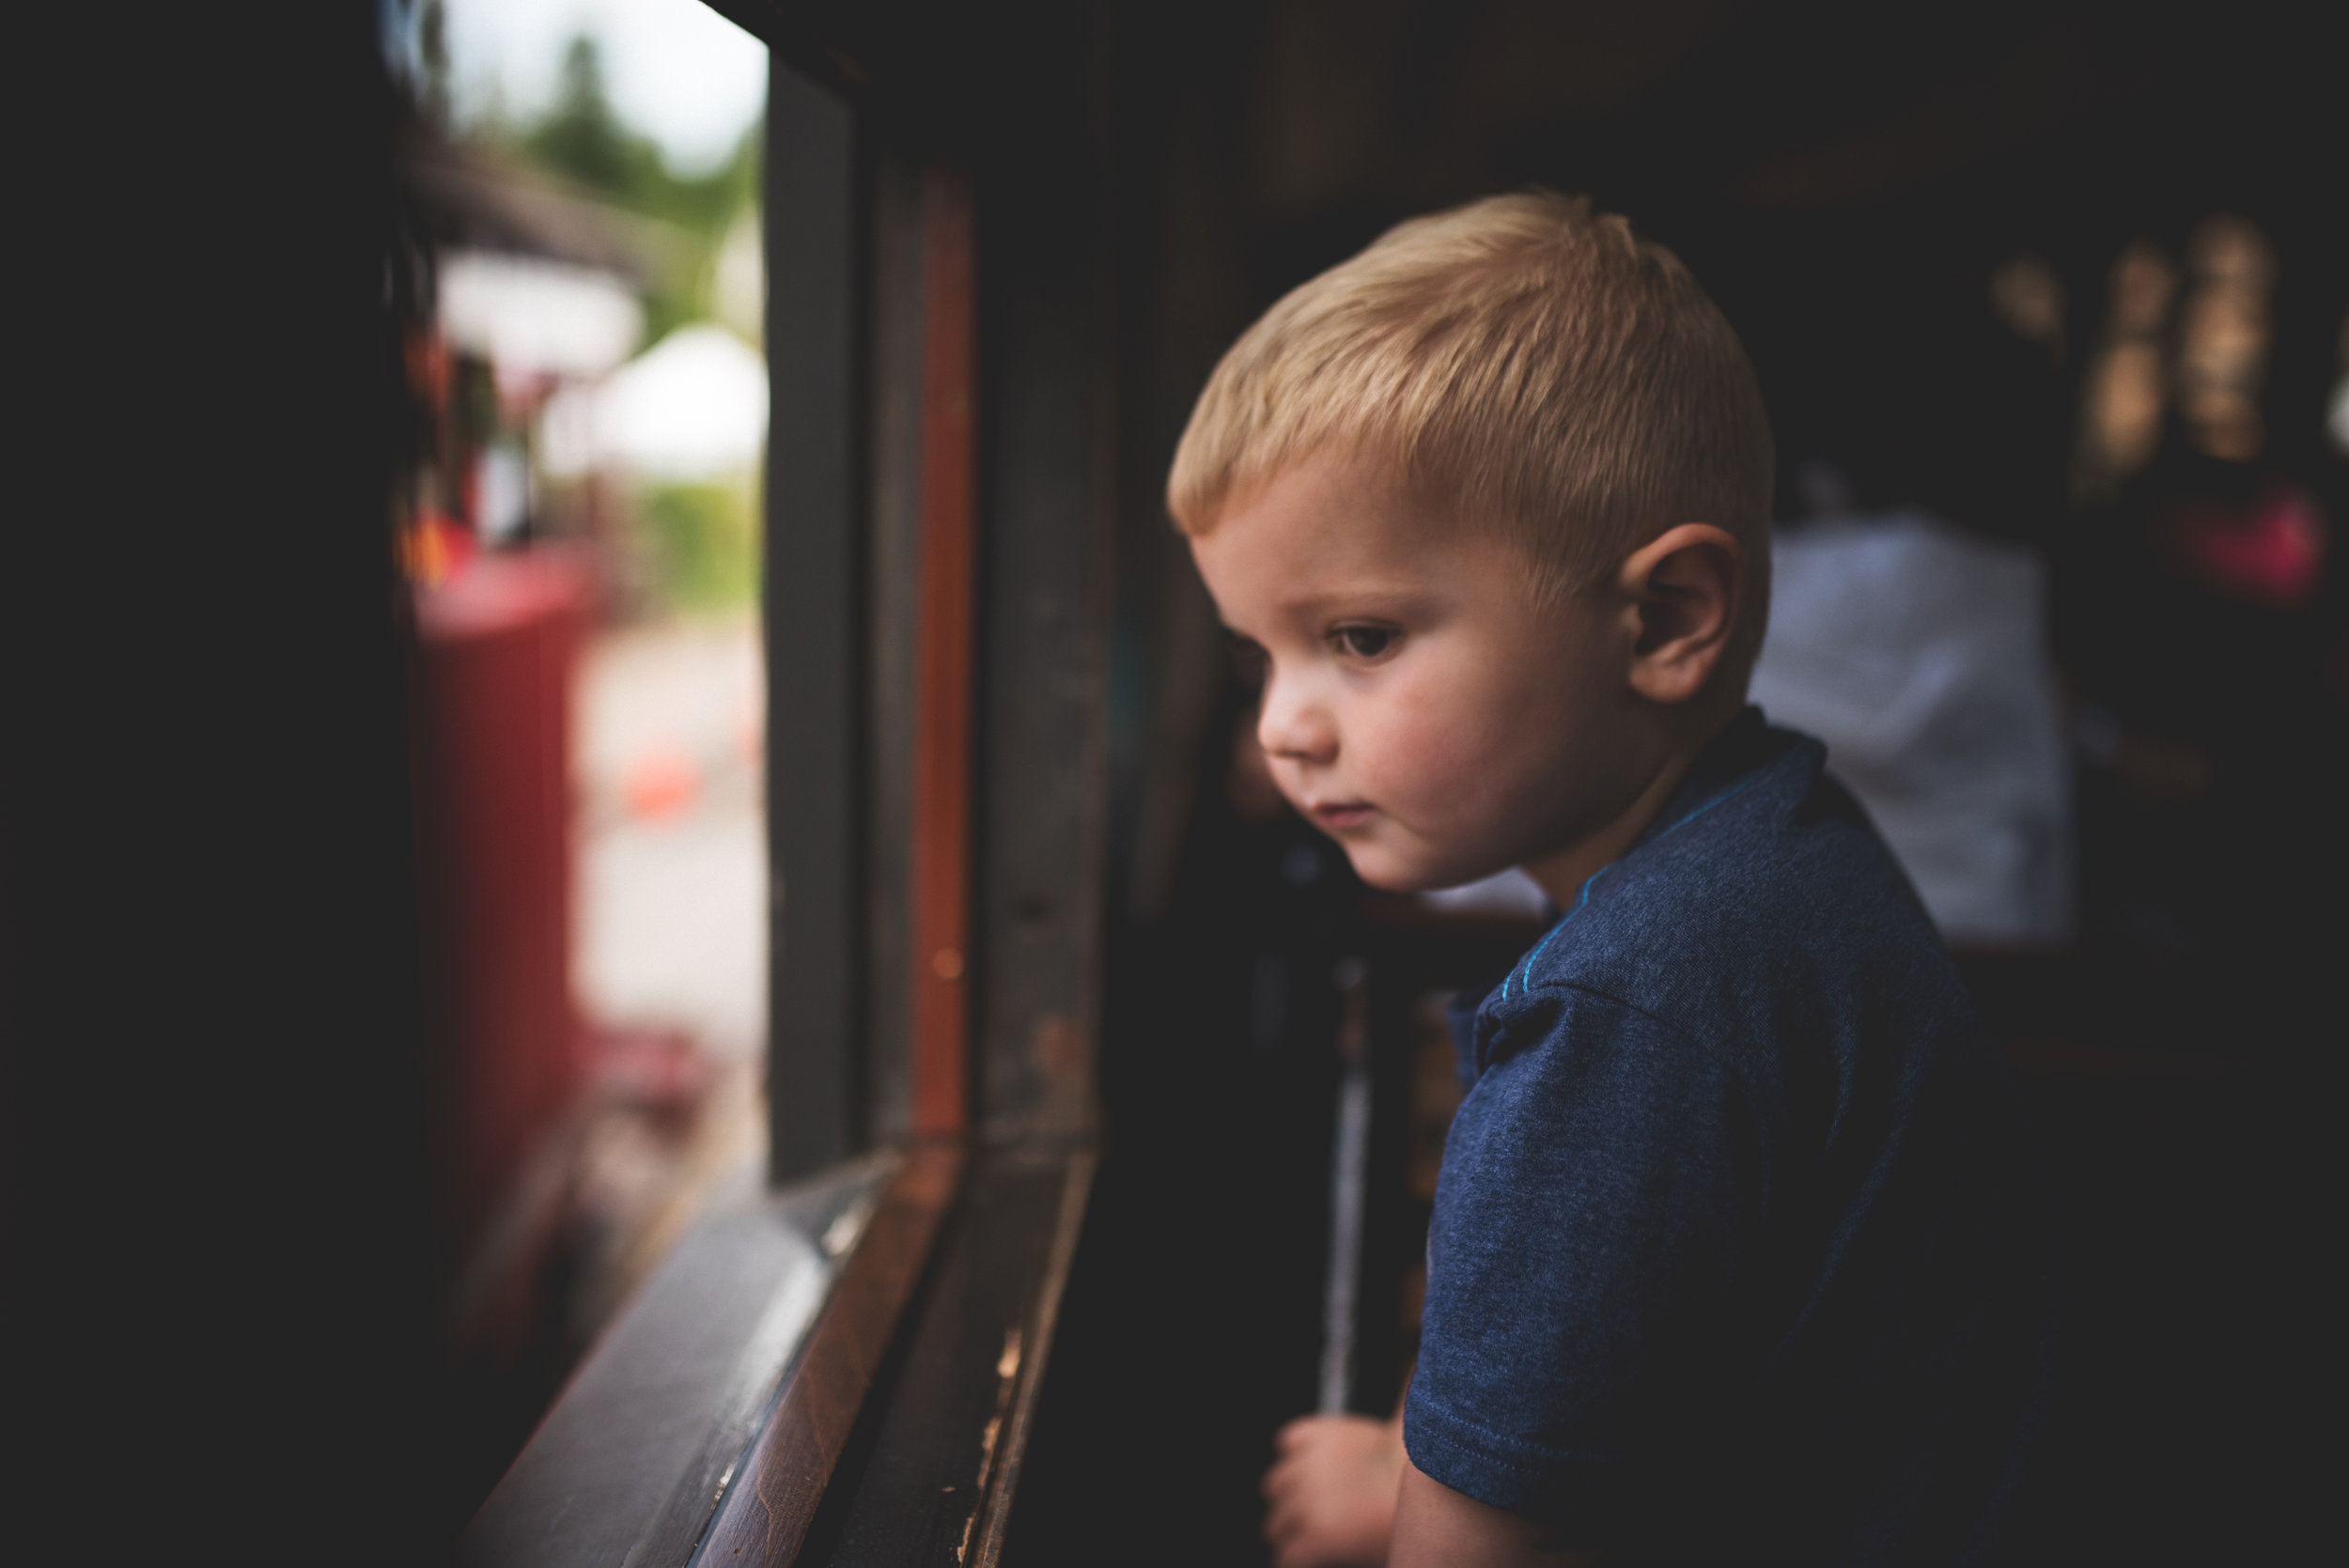 Kristin Grover Images, A Day out with Thomas, Northwest Train Museum, Snoqualmie, WA, North Bend Family Photographer